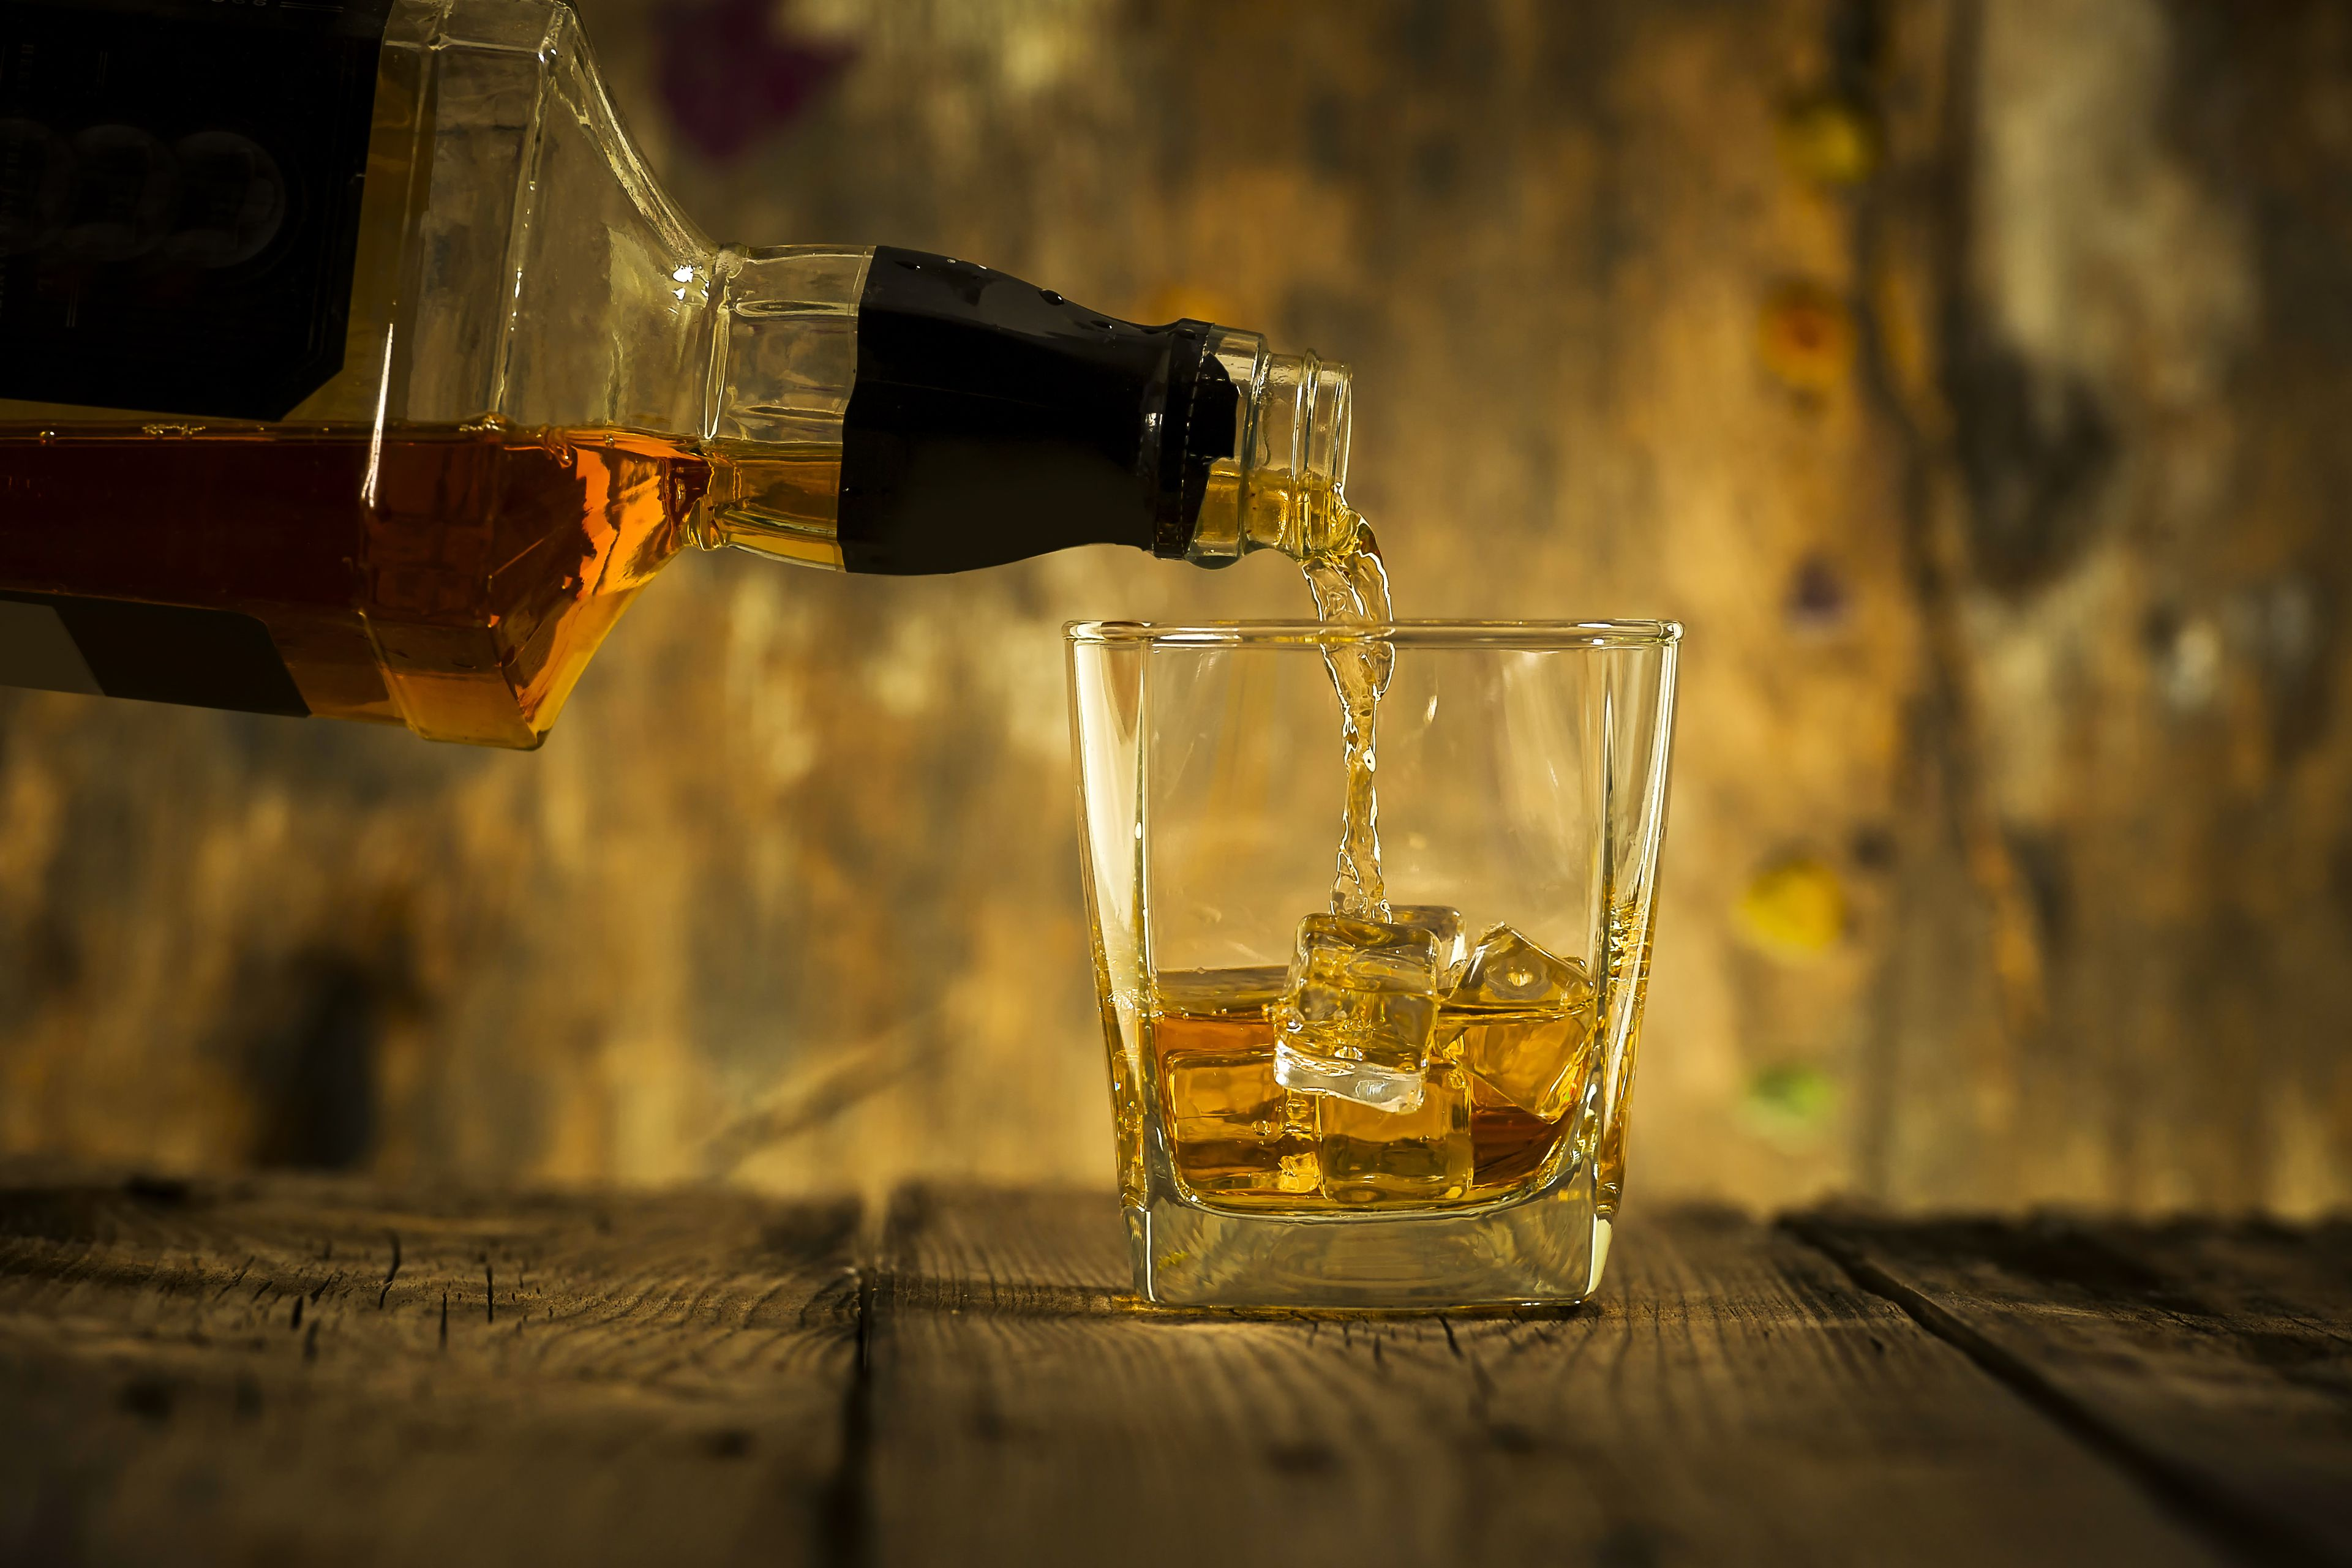 The 15 Best Whiskey Bottles to Buy in 2020